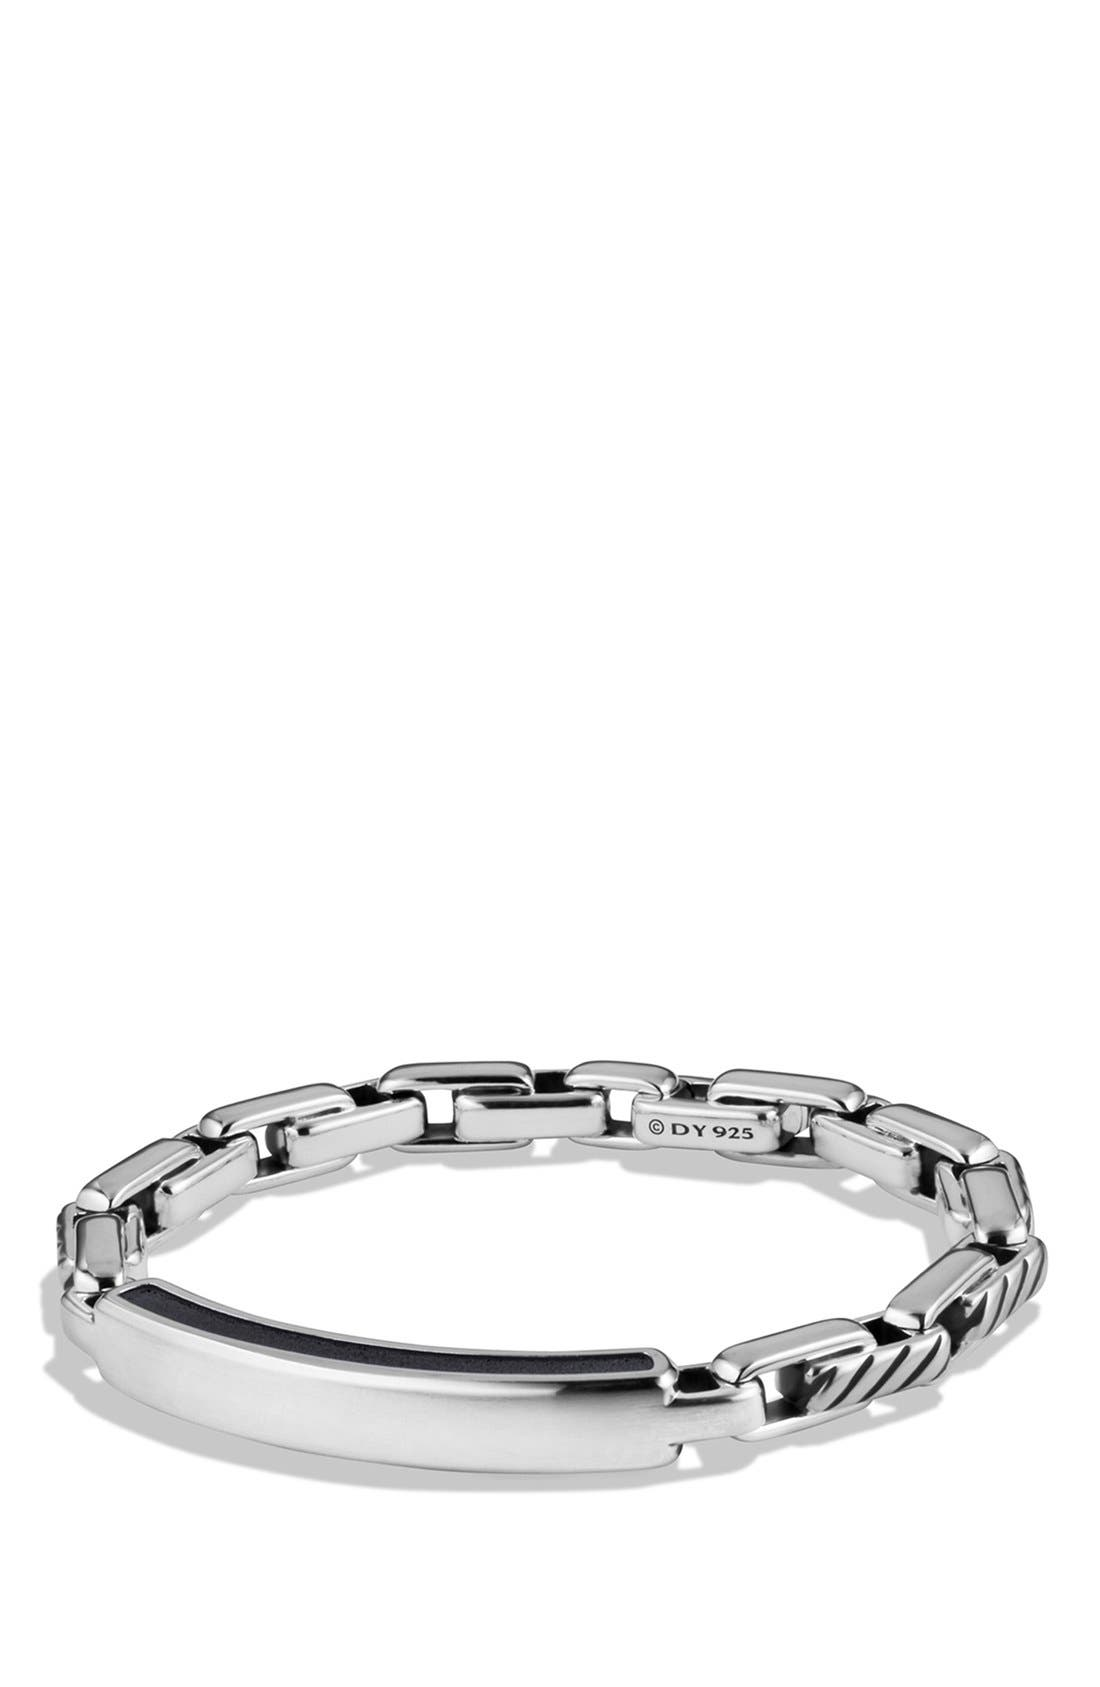 Alternate Image 1 Selected - David Yurman 'Modern Cable' ID Bracelet